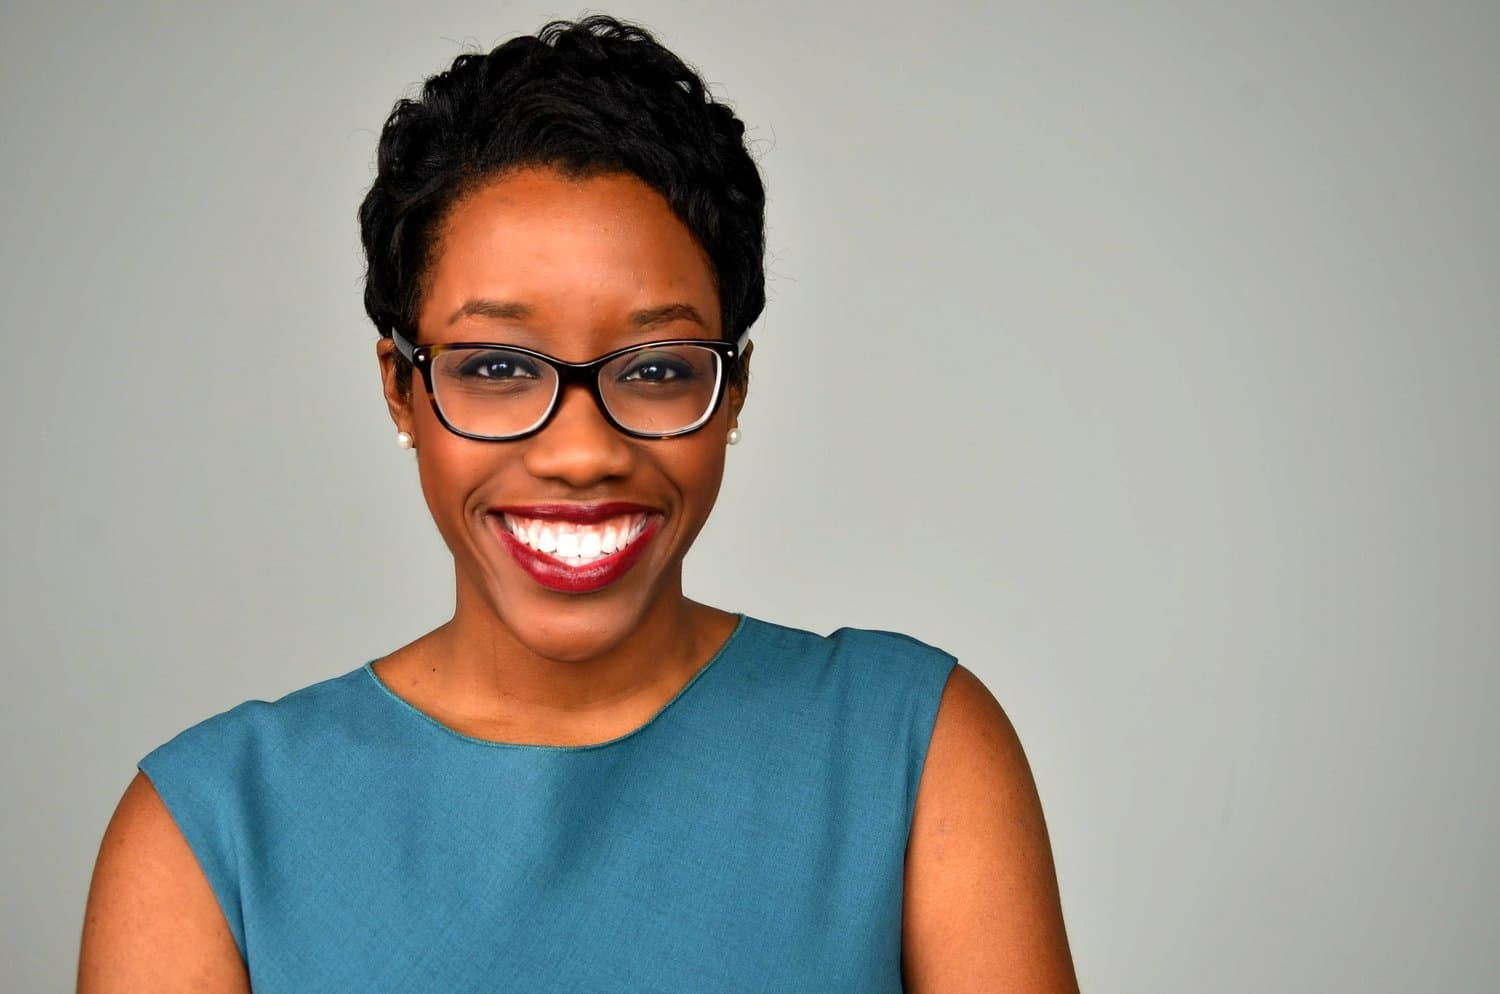 Lauren Underwood, Democratic Candidate For Illinois' 14th Congressional District